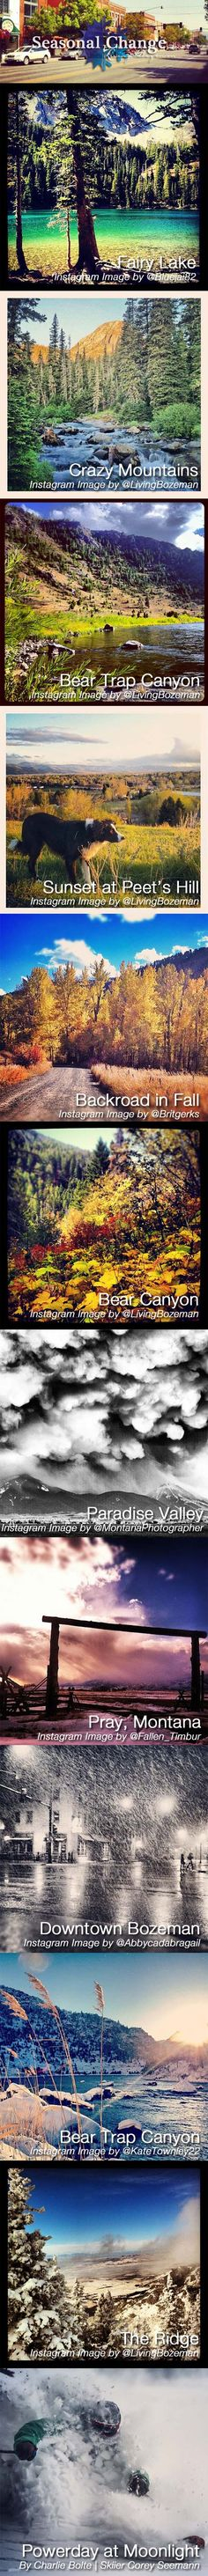 Image collection showing the changing seasons in the Bozeman, Montana area. Photographs from Fairy Lake, Bear Trap Canyon, Downtown Bozeman, Crazy Mountains, Peet's Hill, Bear Canyon, Paradise Valley, Moonlight Basin, and Bridger Bowls Ridge.